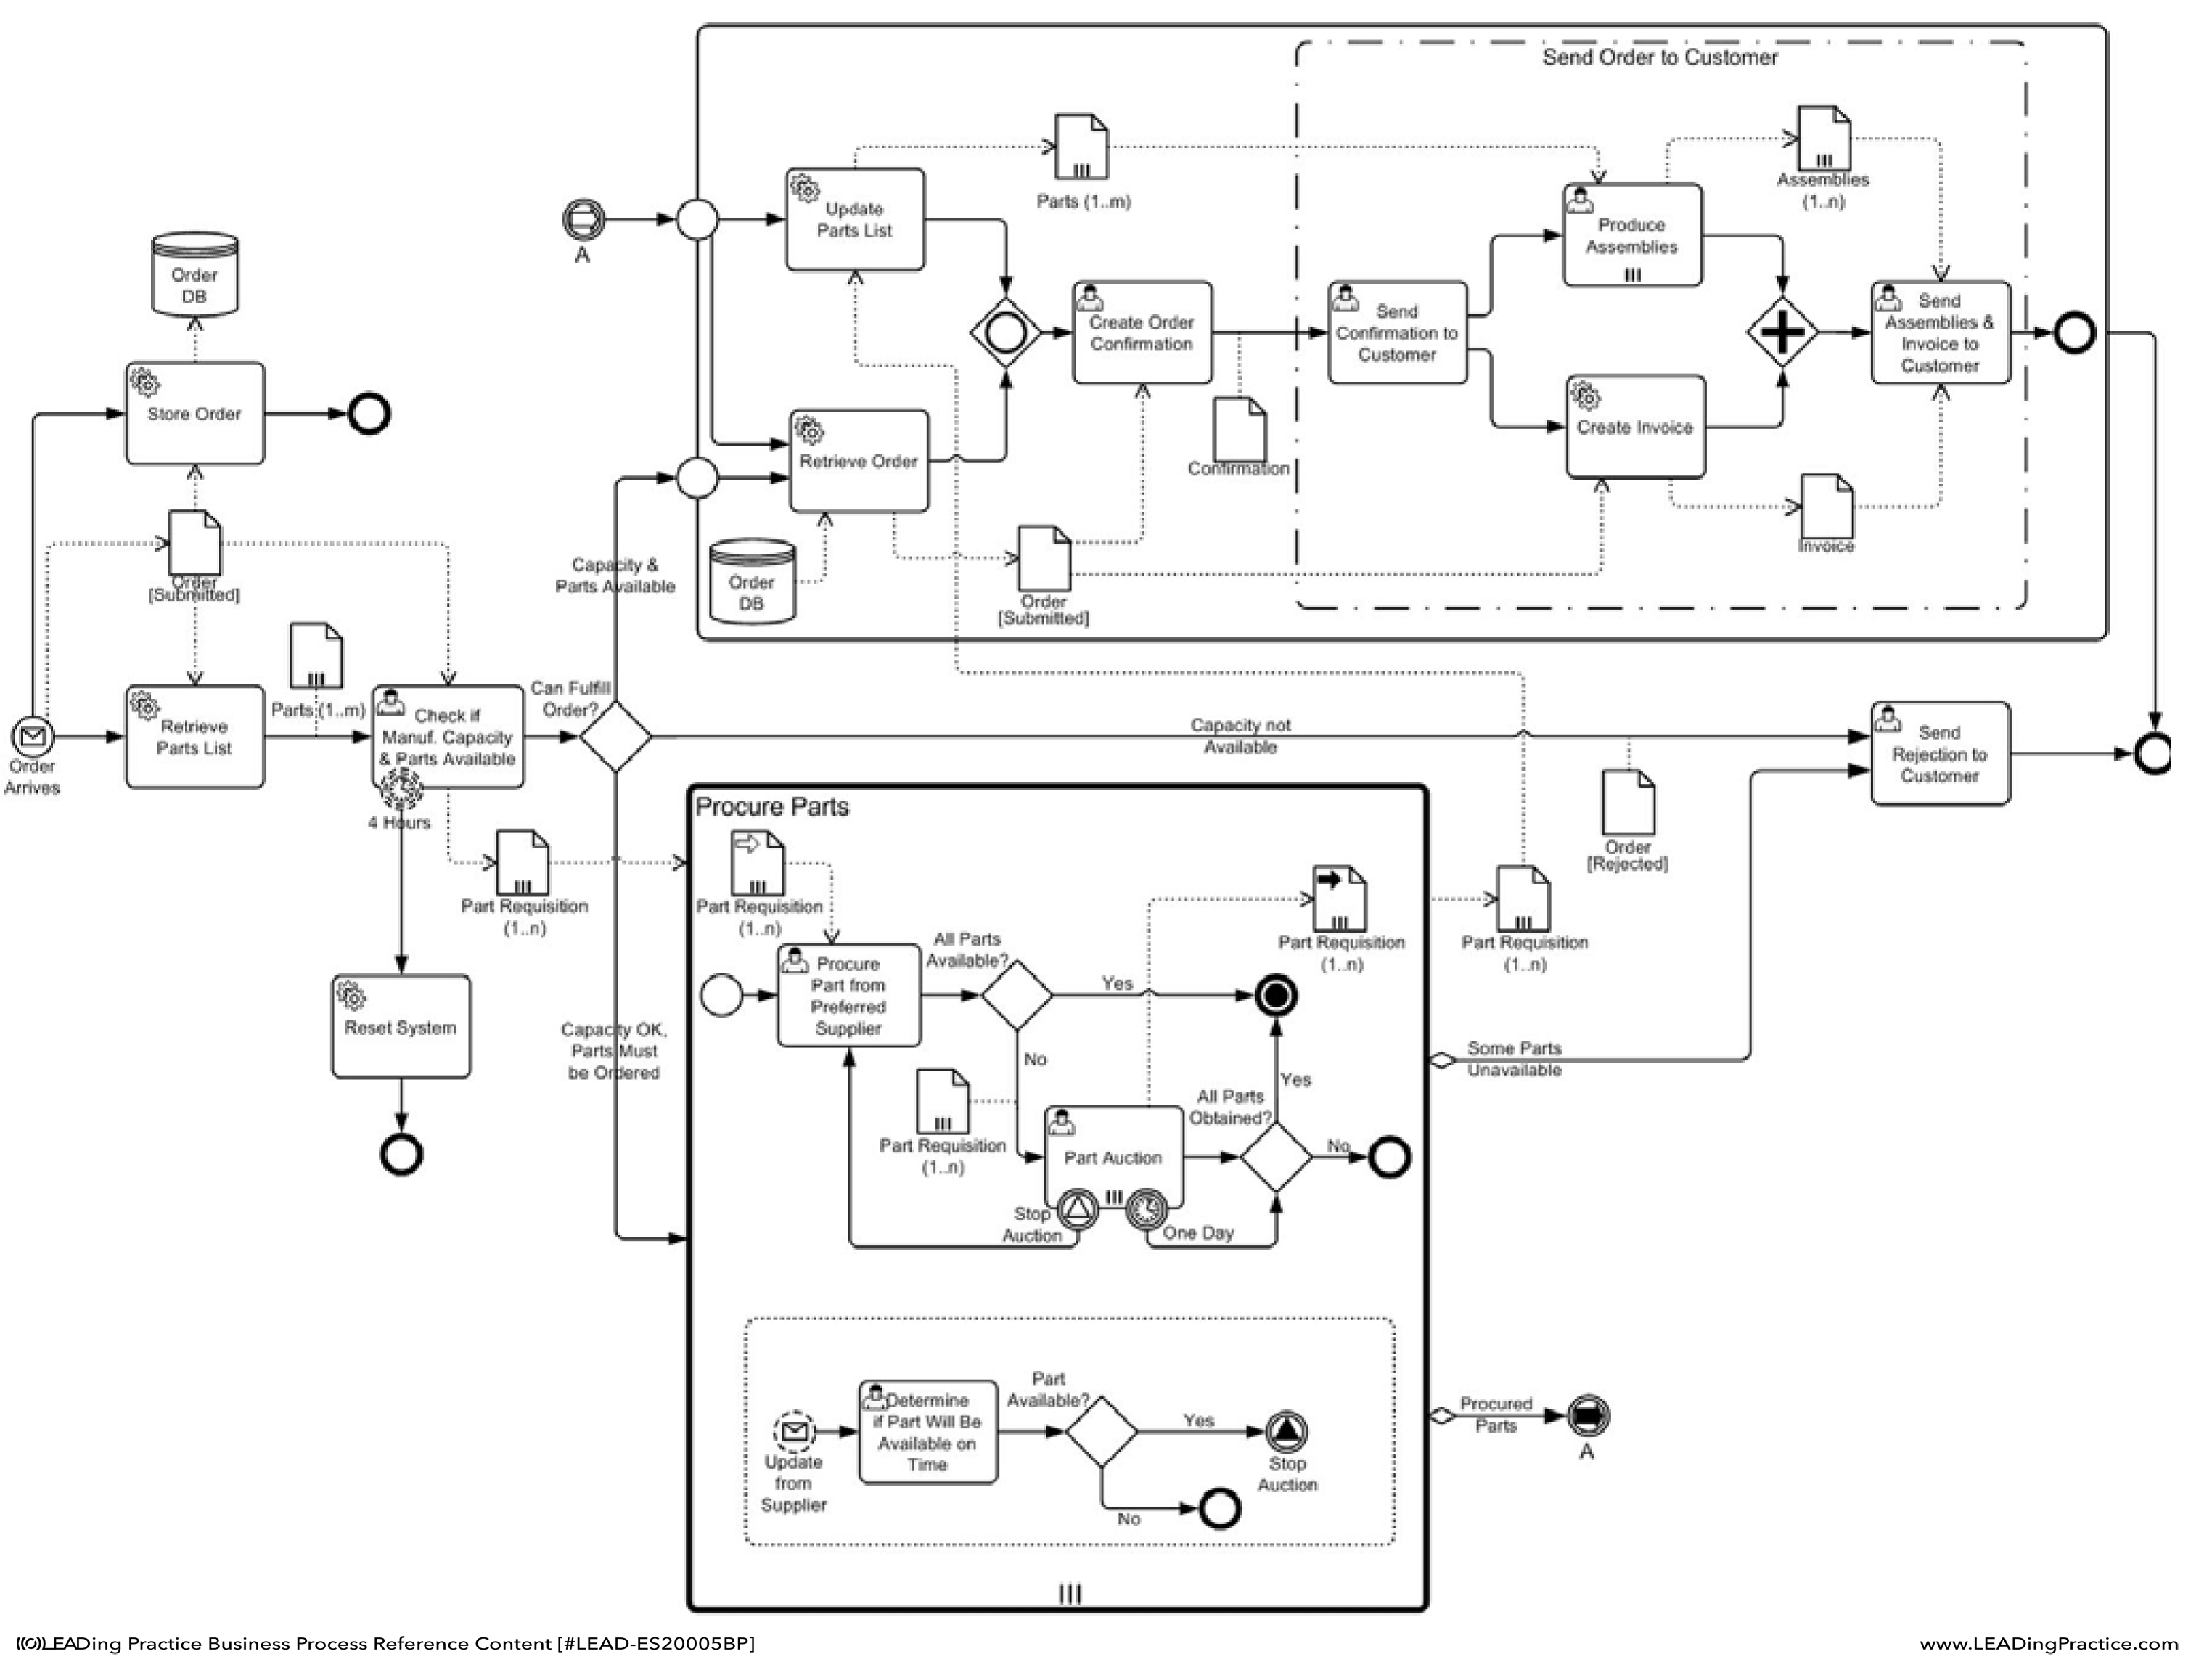 Bpm handbook example of process orchestration diagram download ccuart